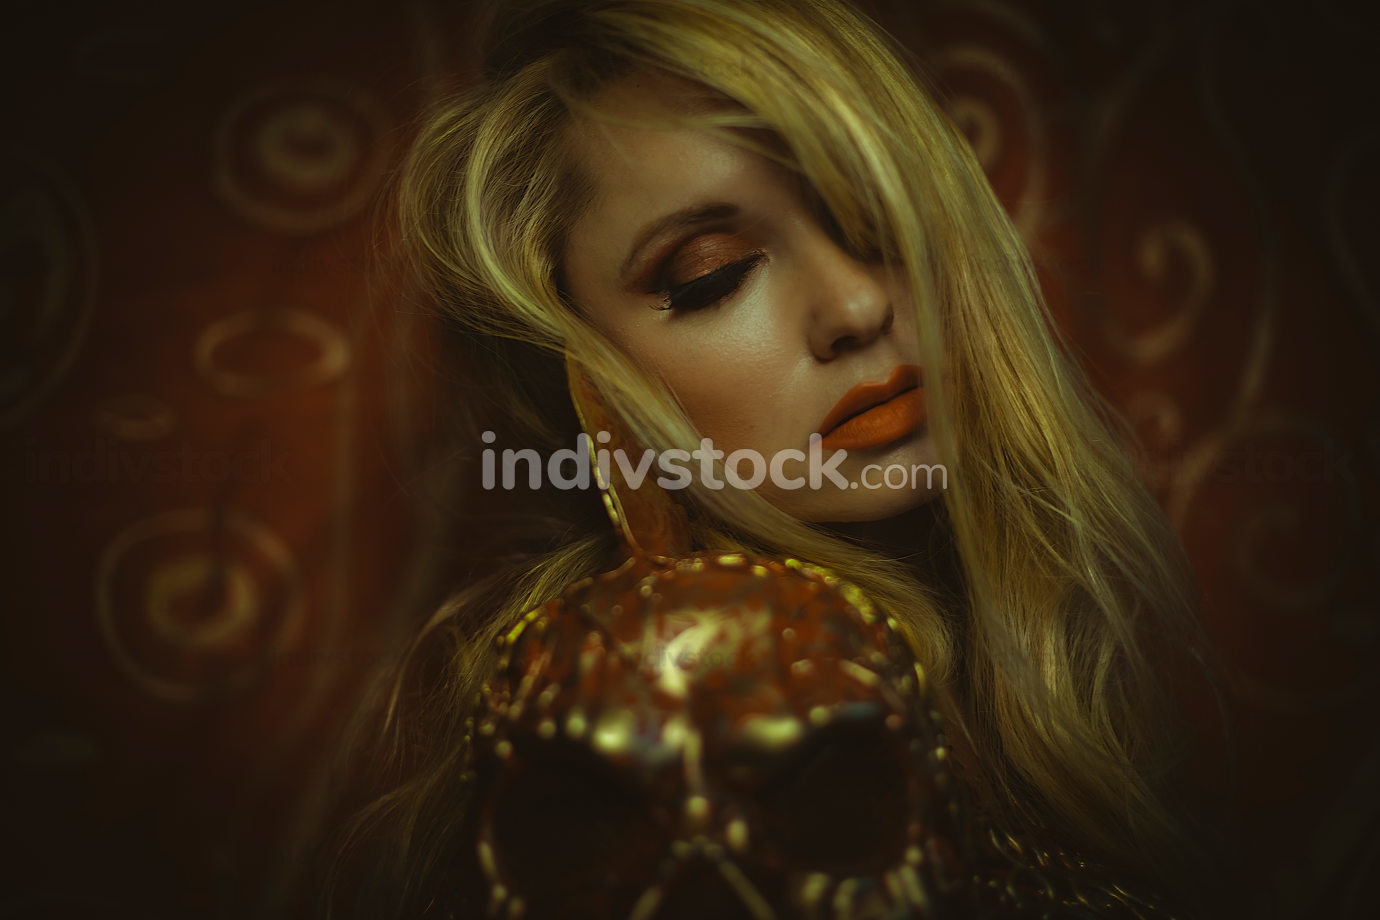 Sensual blonde with a melancholy red and gold armor, burlesque i